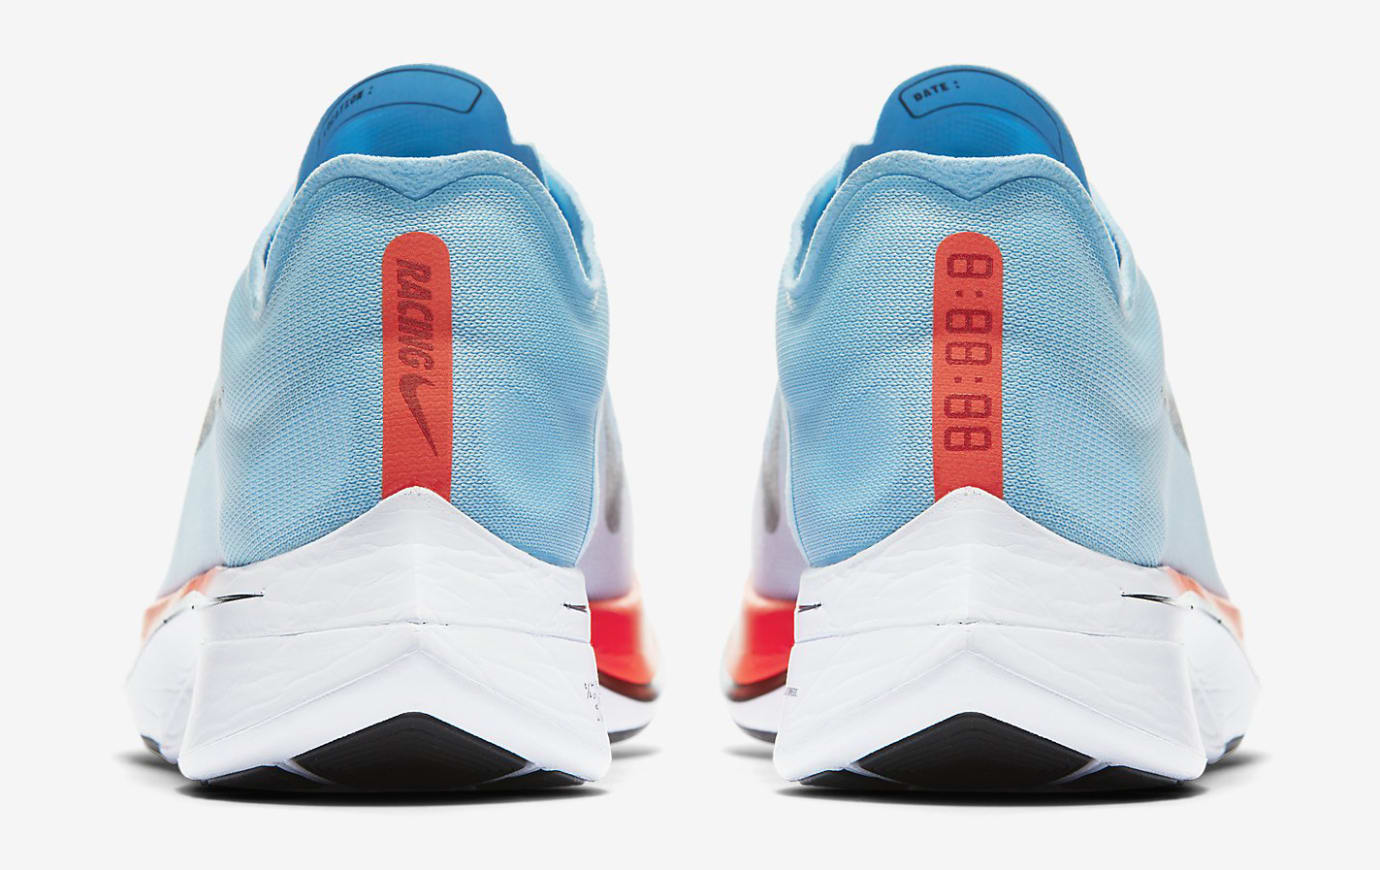 Nike Zoom Vaporfly 4 Percent Release Date 880847-401  ffc4f3a1a